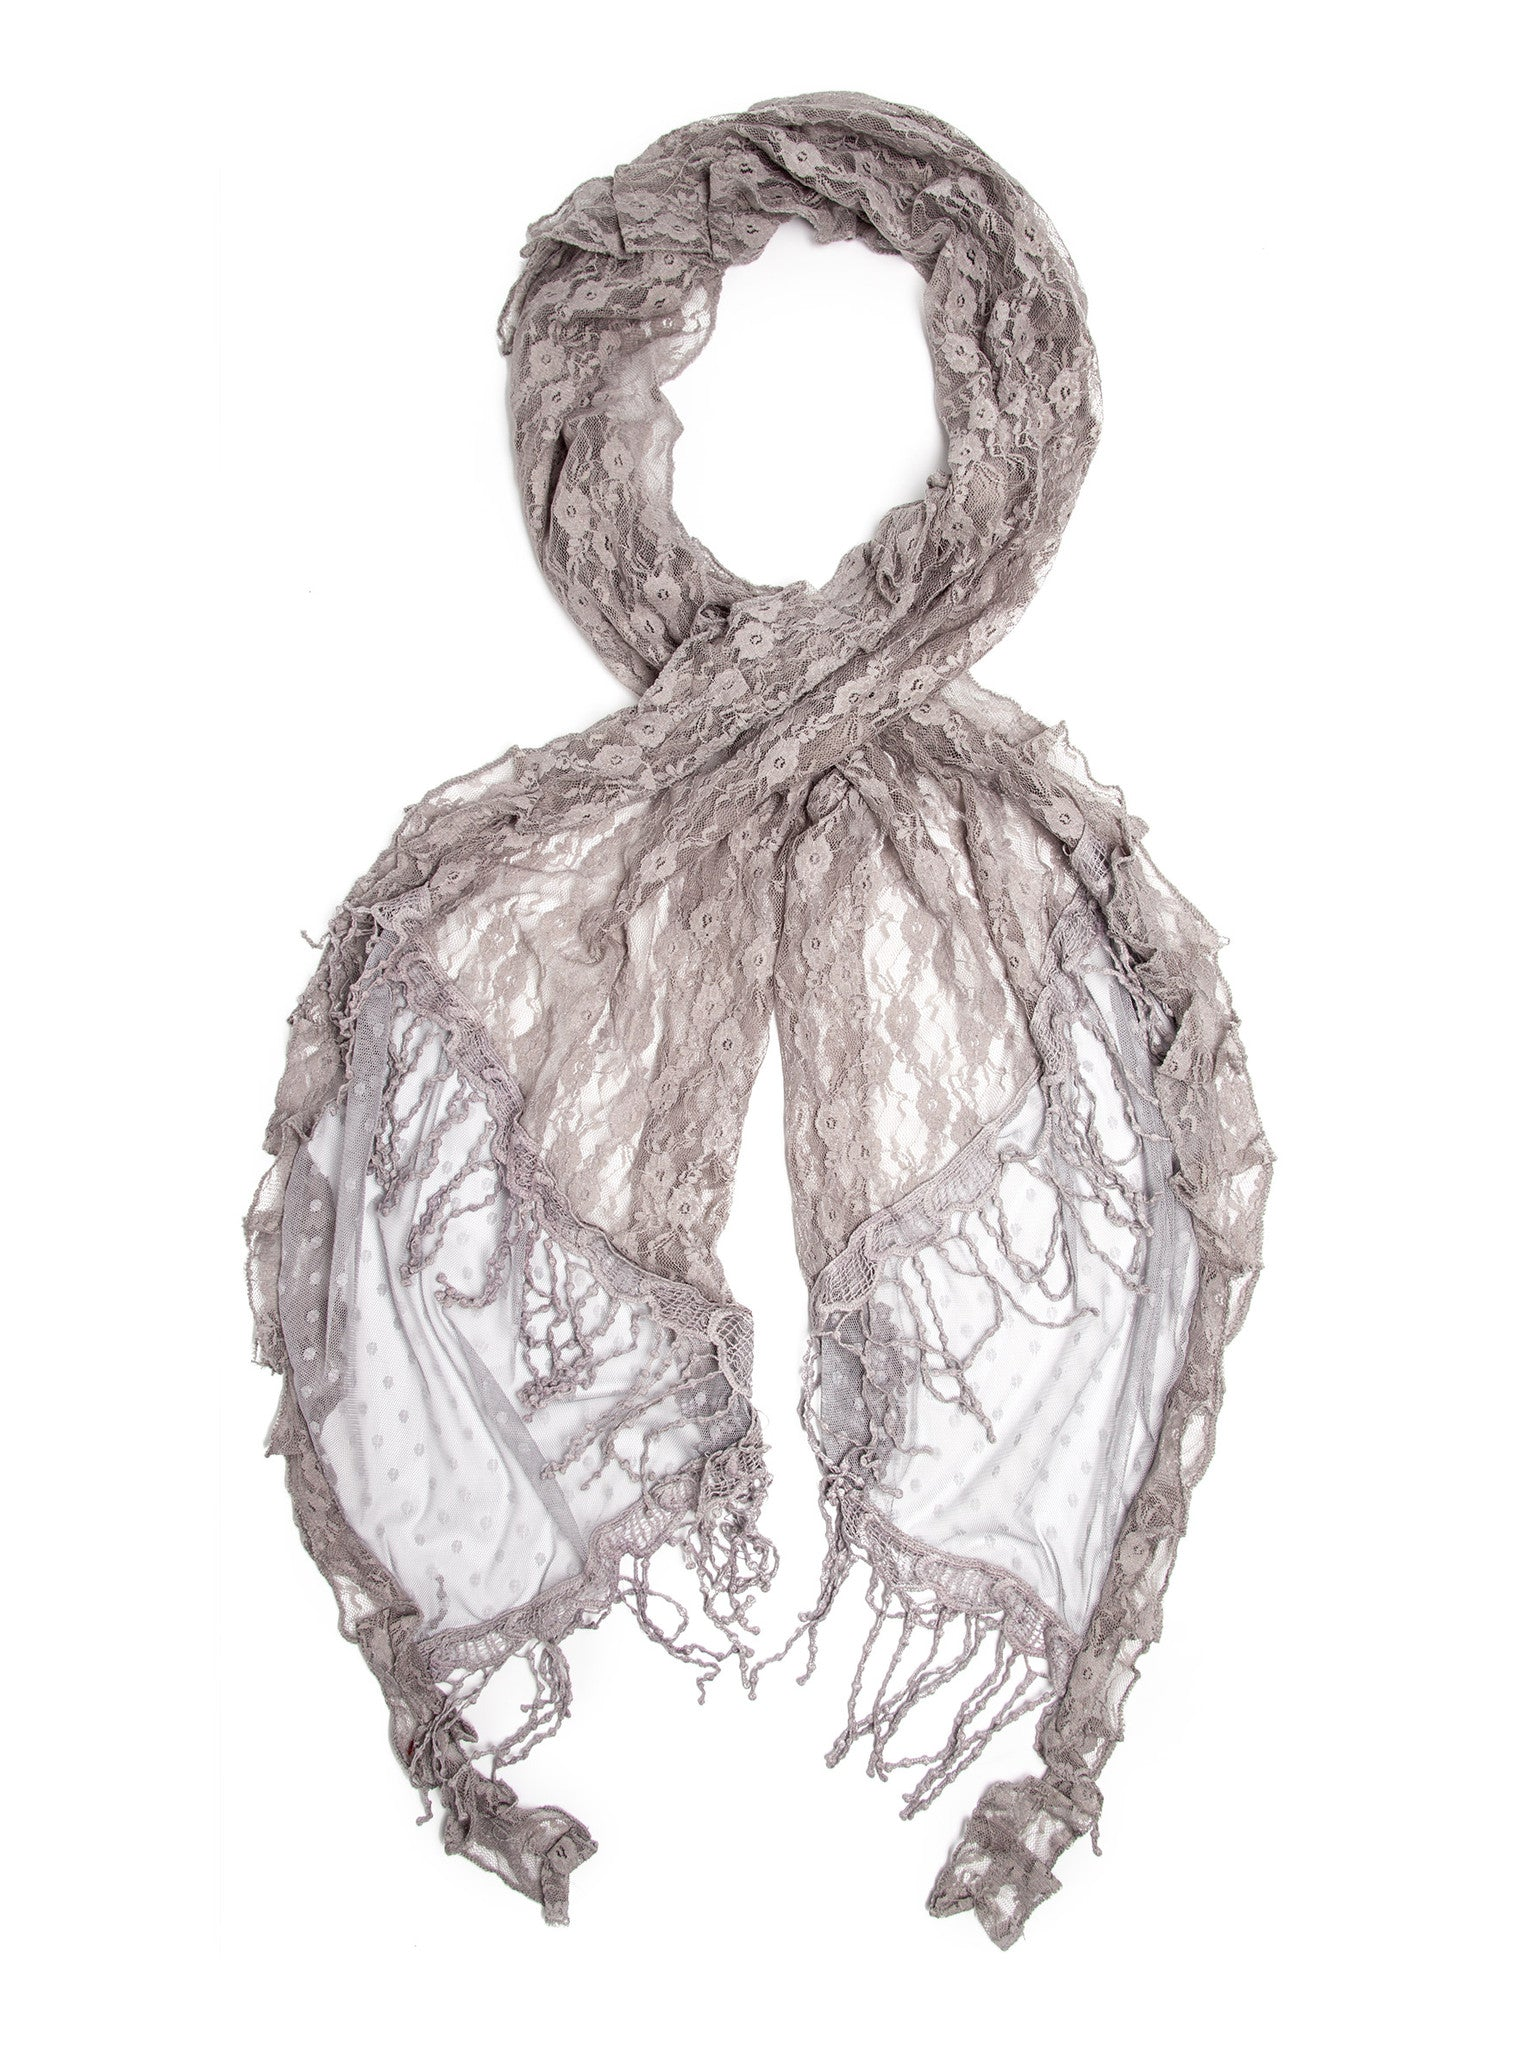 Scarves - Elise Scarf, Vintage Inspired Lace Scarf, Long Crochet Trim -(Silver / One Size) Bohomonde  - 1